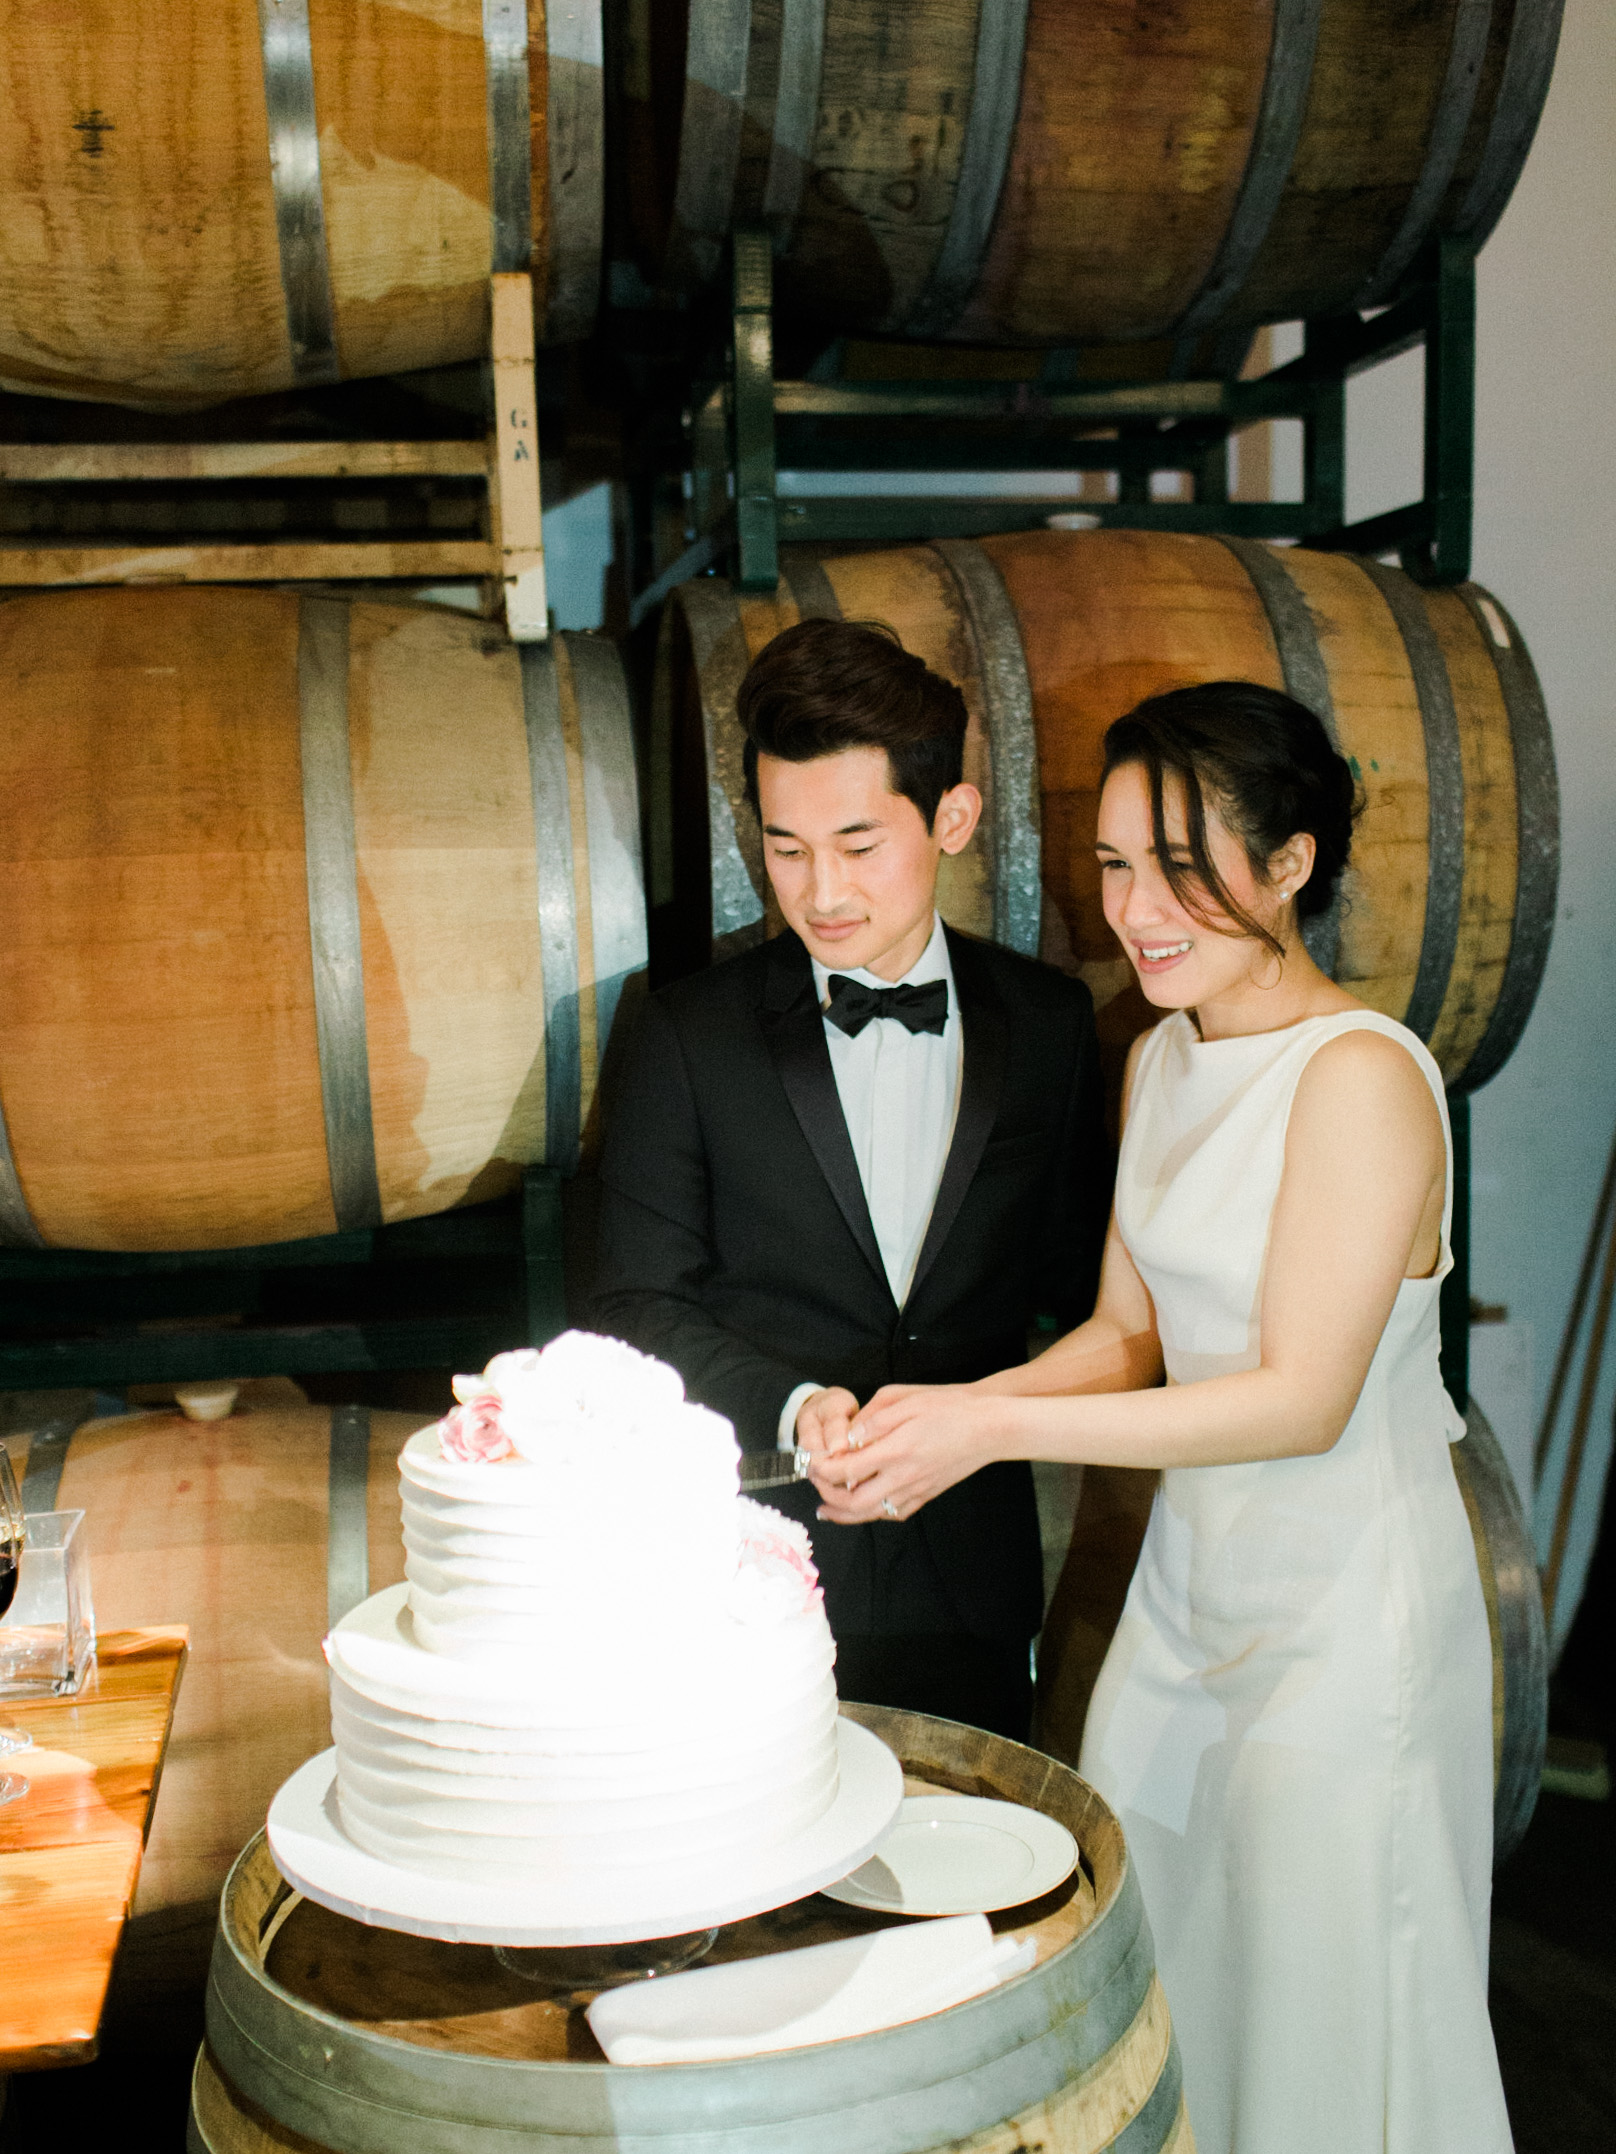 Romantic chic wineworks sf wedding - Fine Art Film Photographer Jenny Soi